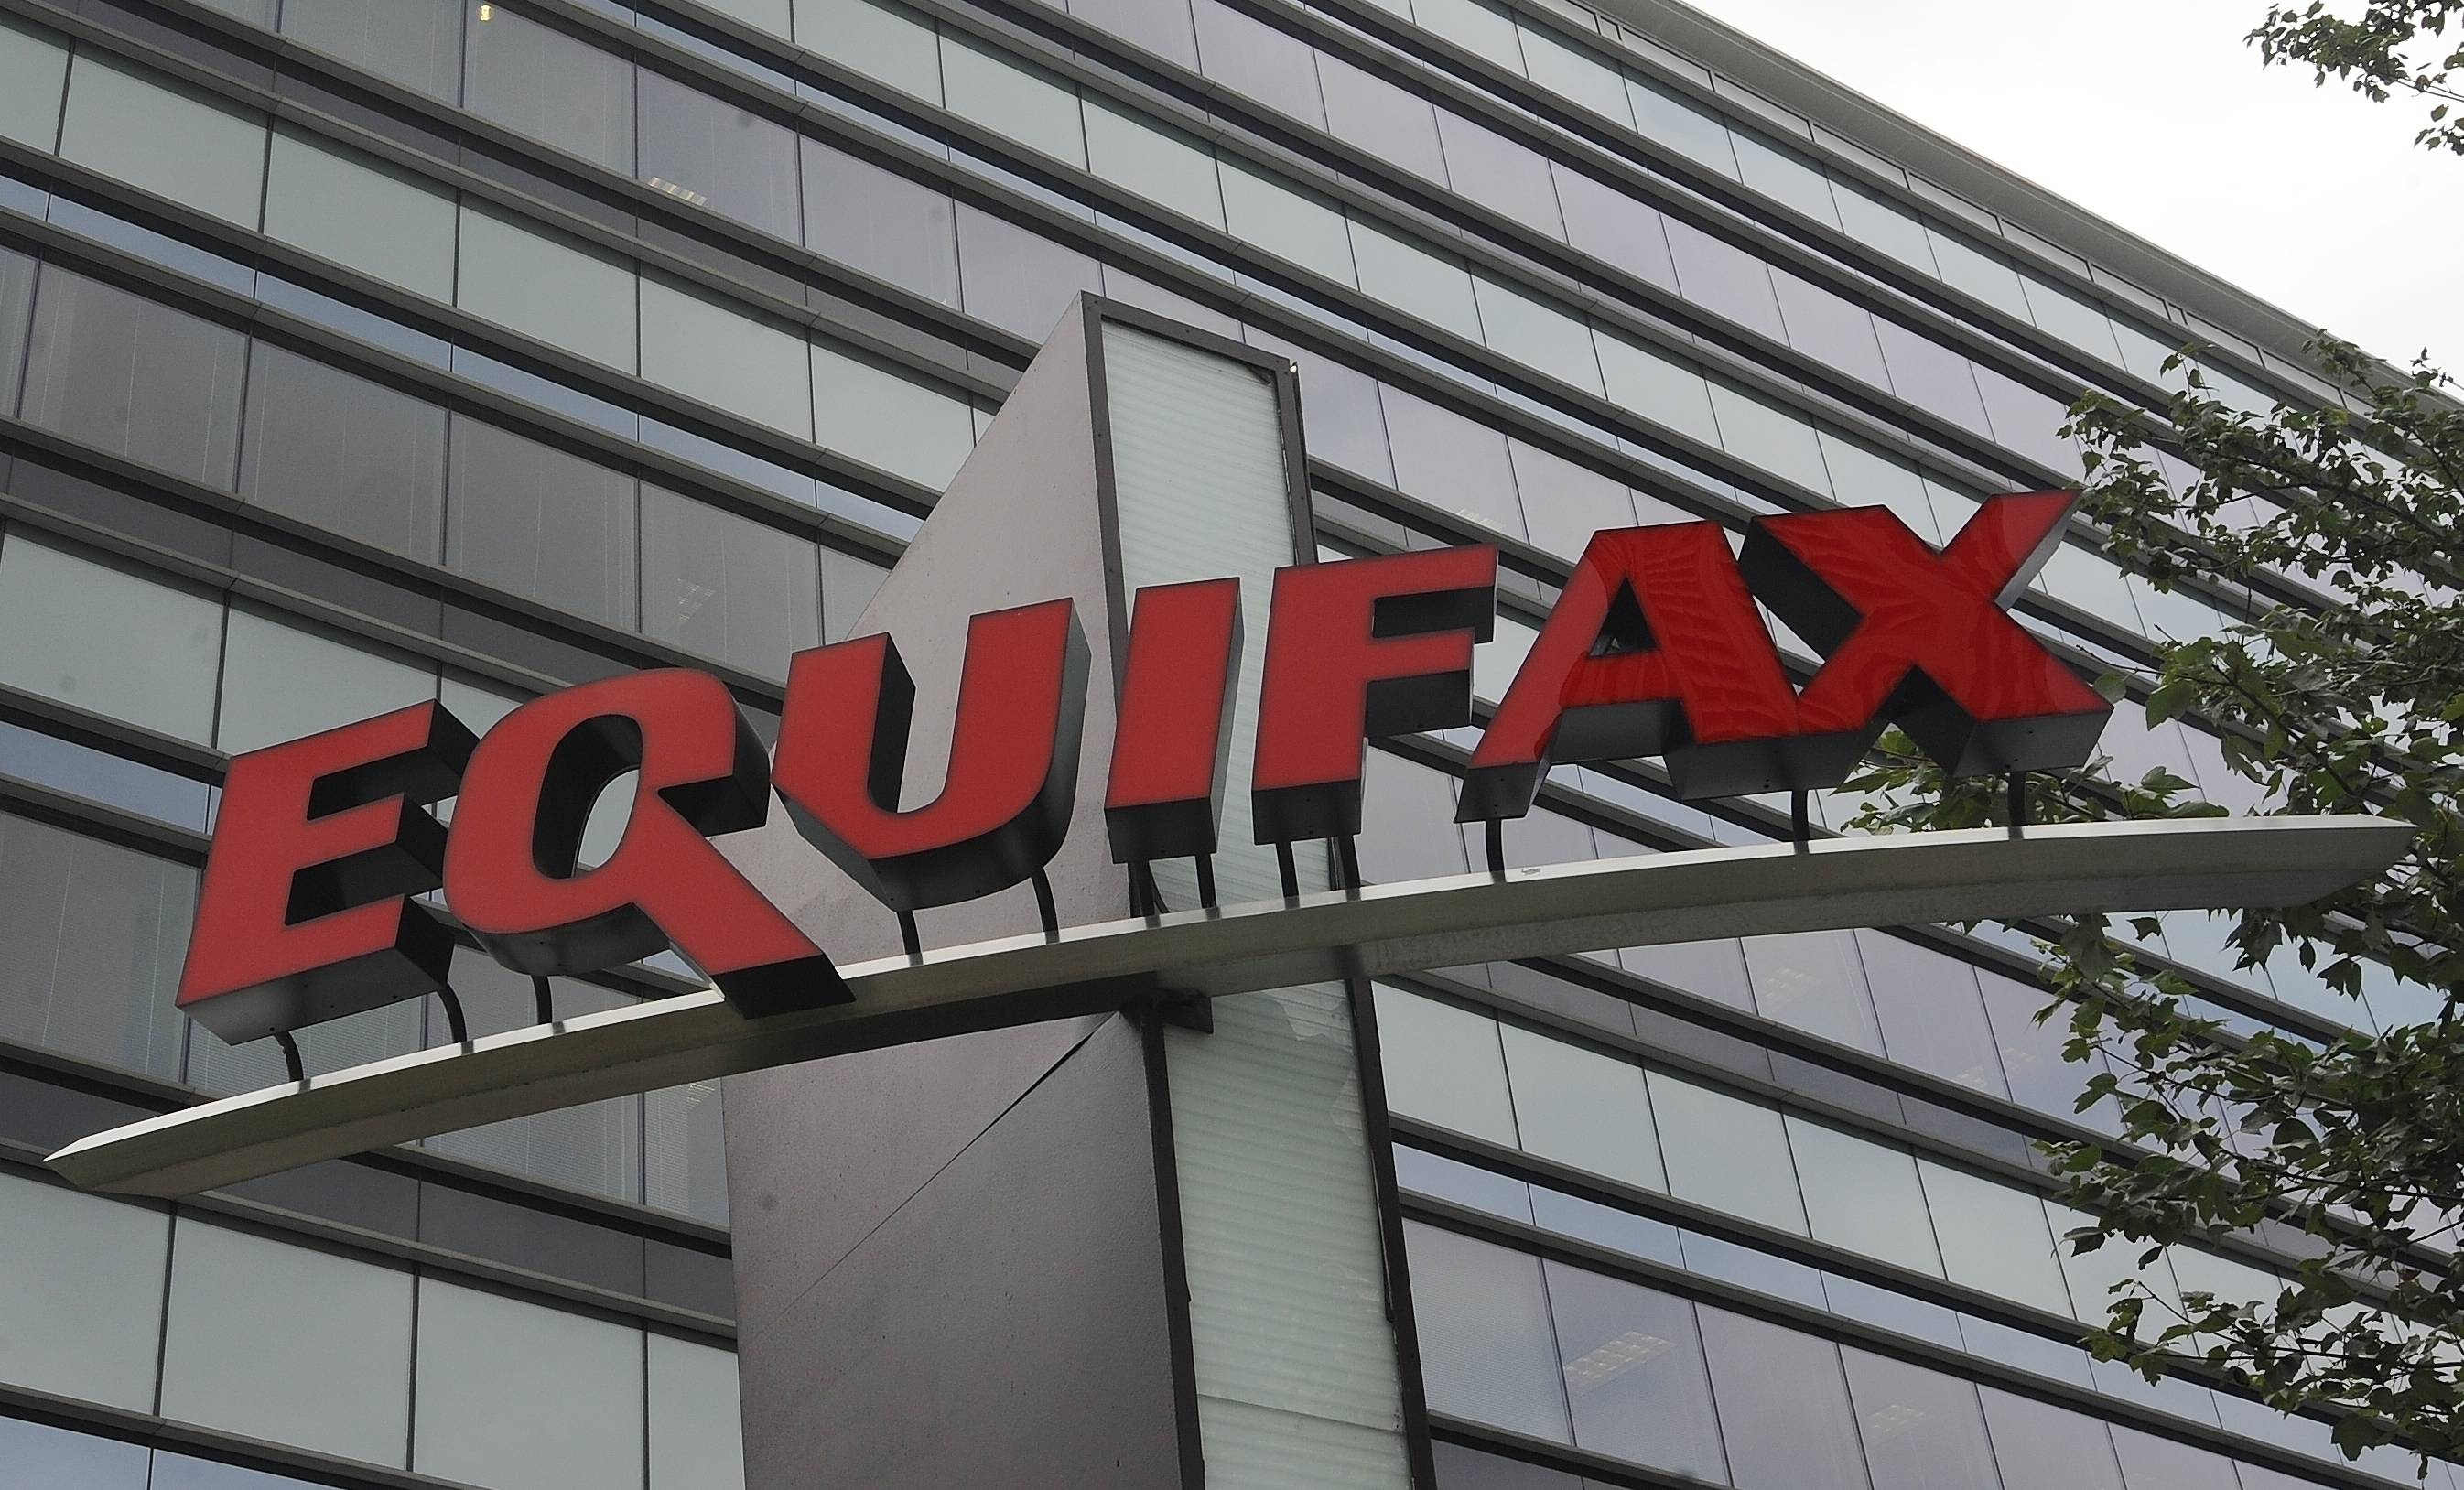 The Equifax hack exposed the names, addresses, birth dates and Social Security numbers of up to 145.5 million Americans. And it's just the beginning.